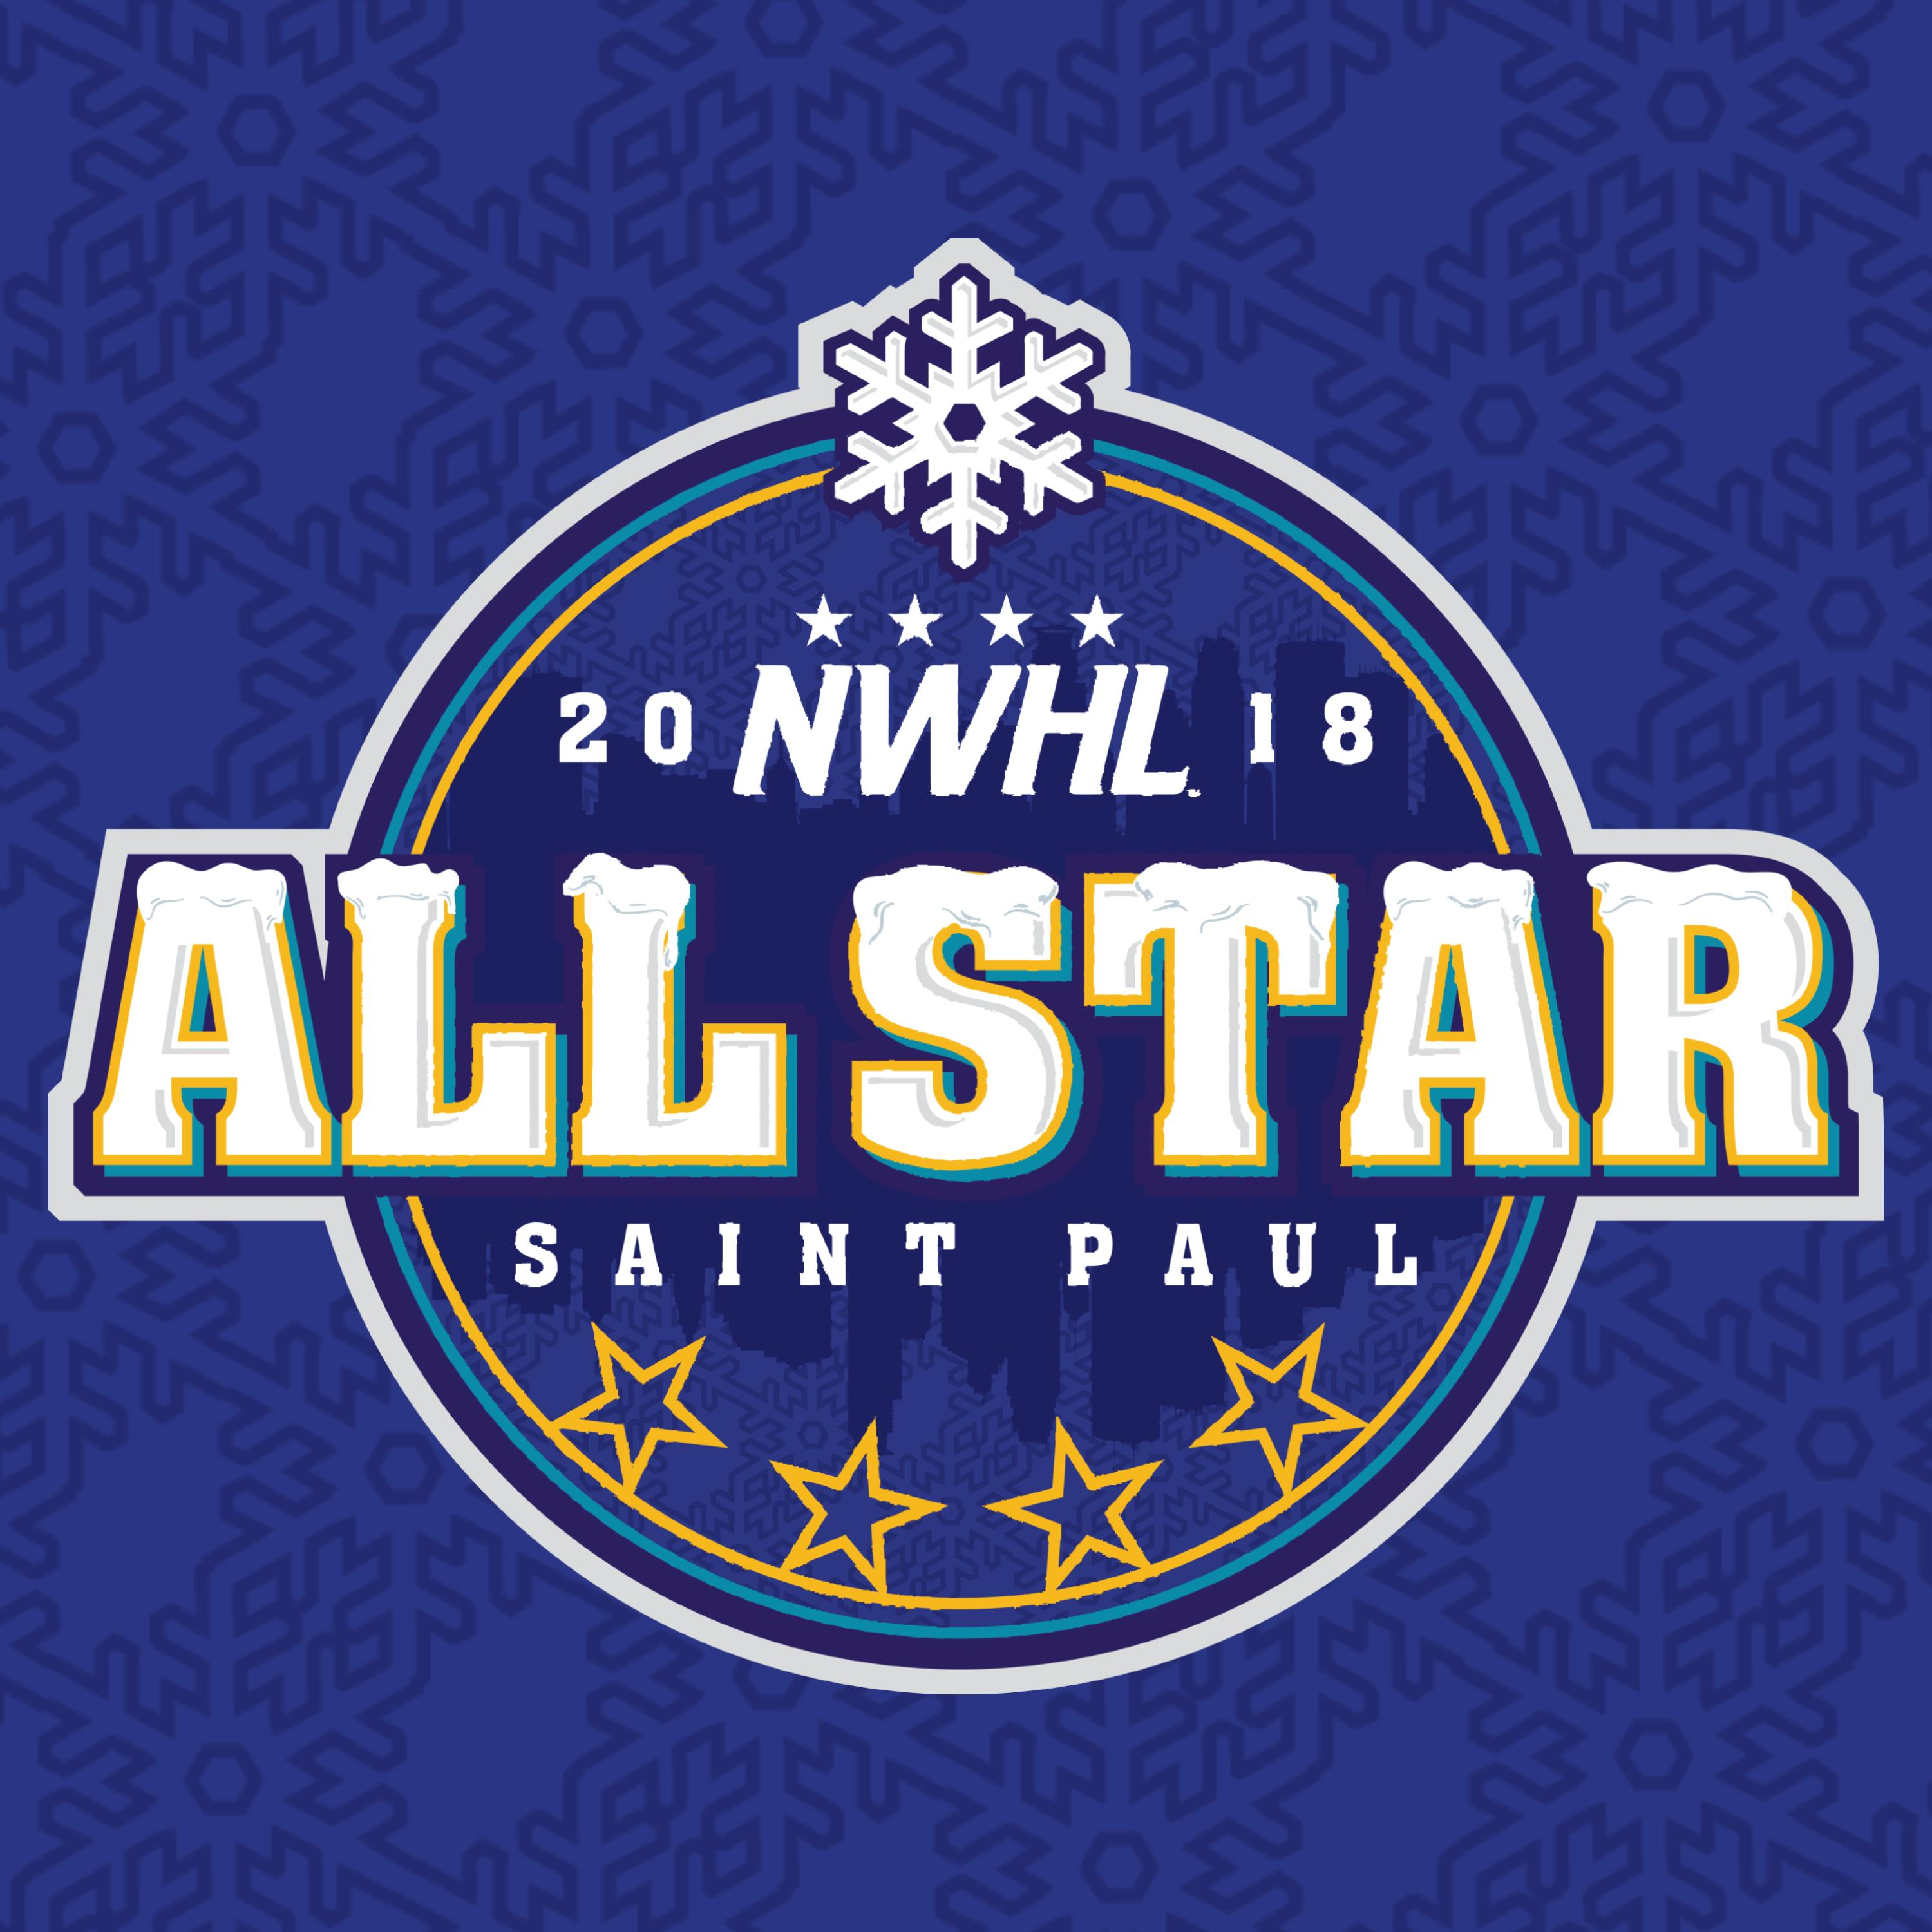 NWHL All-Star Weekend: Main Image